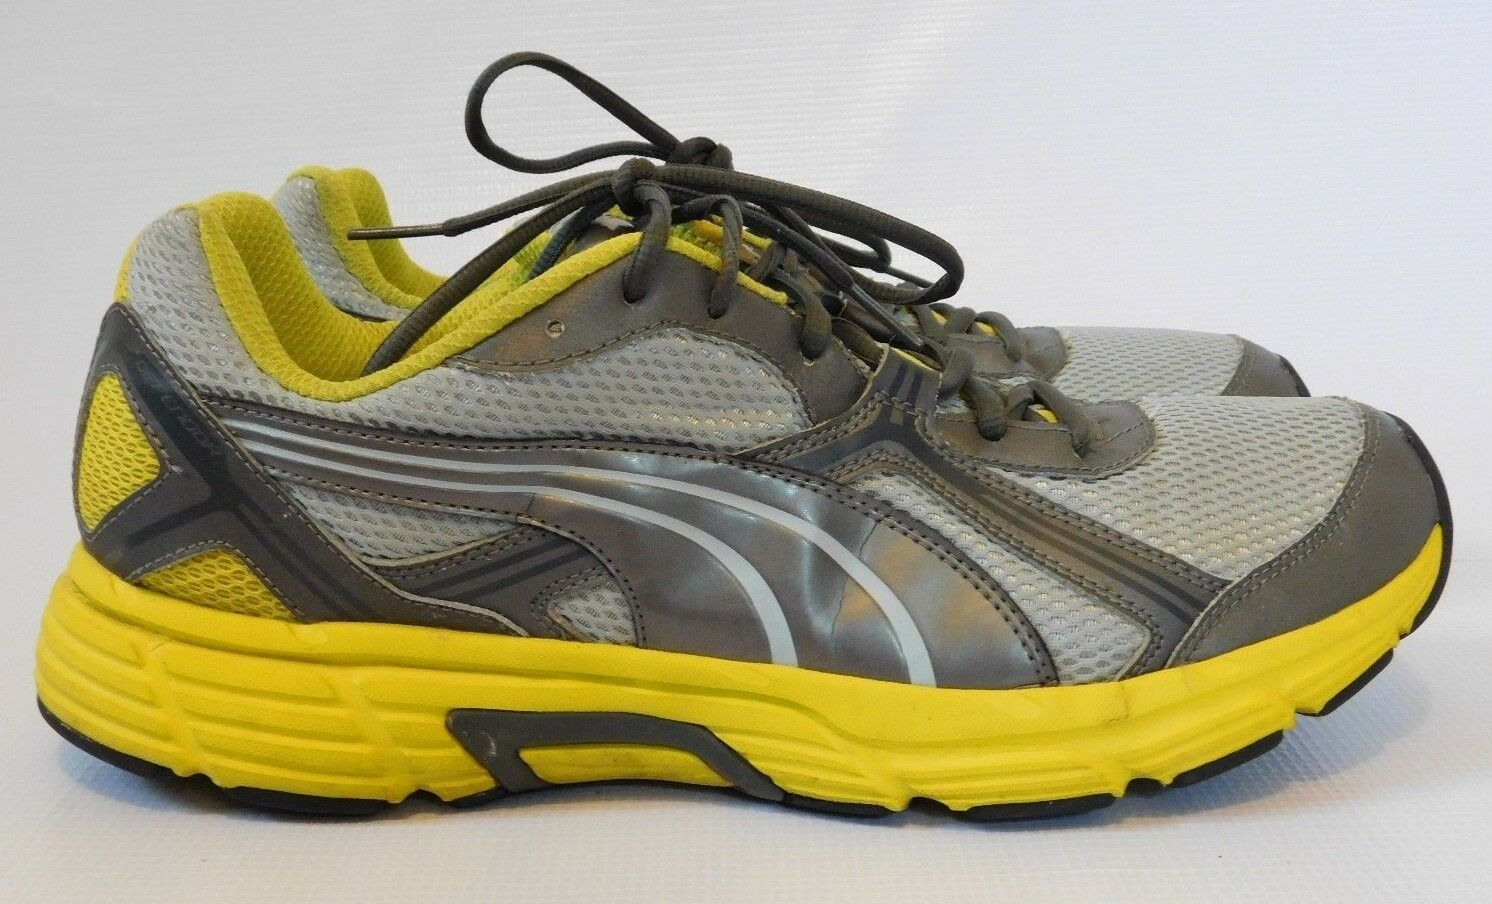 PUMA  Defendor  Mens Silver Running shoes Training Sneakers Size 11.5